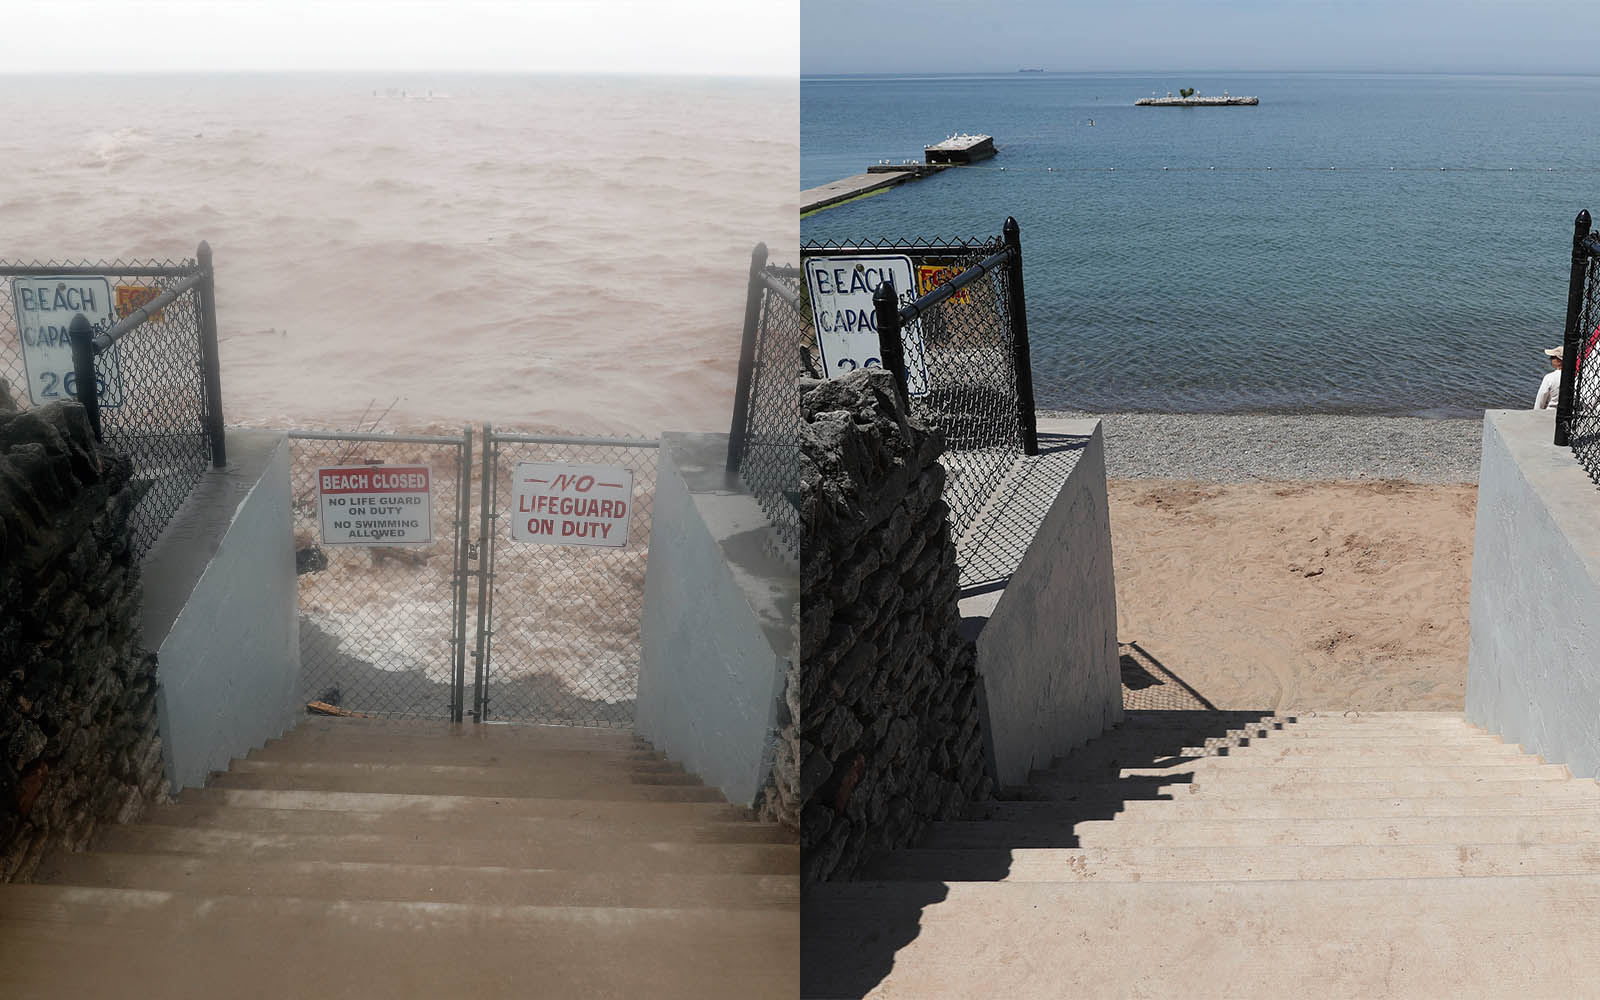 It's been a quiet spring along the shores of Lake Ontario, where the water level is nearly 2 feet lower than it was at this time last year, when flooding and erosion were the main issues. See the difference in photos taken in 2017 to the ones from 2018.